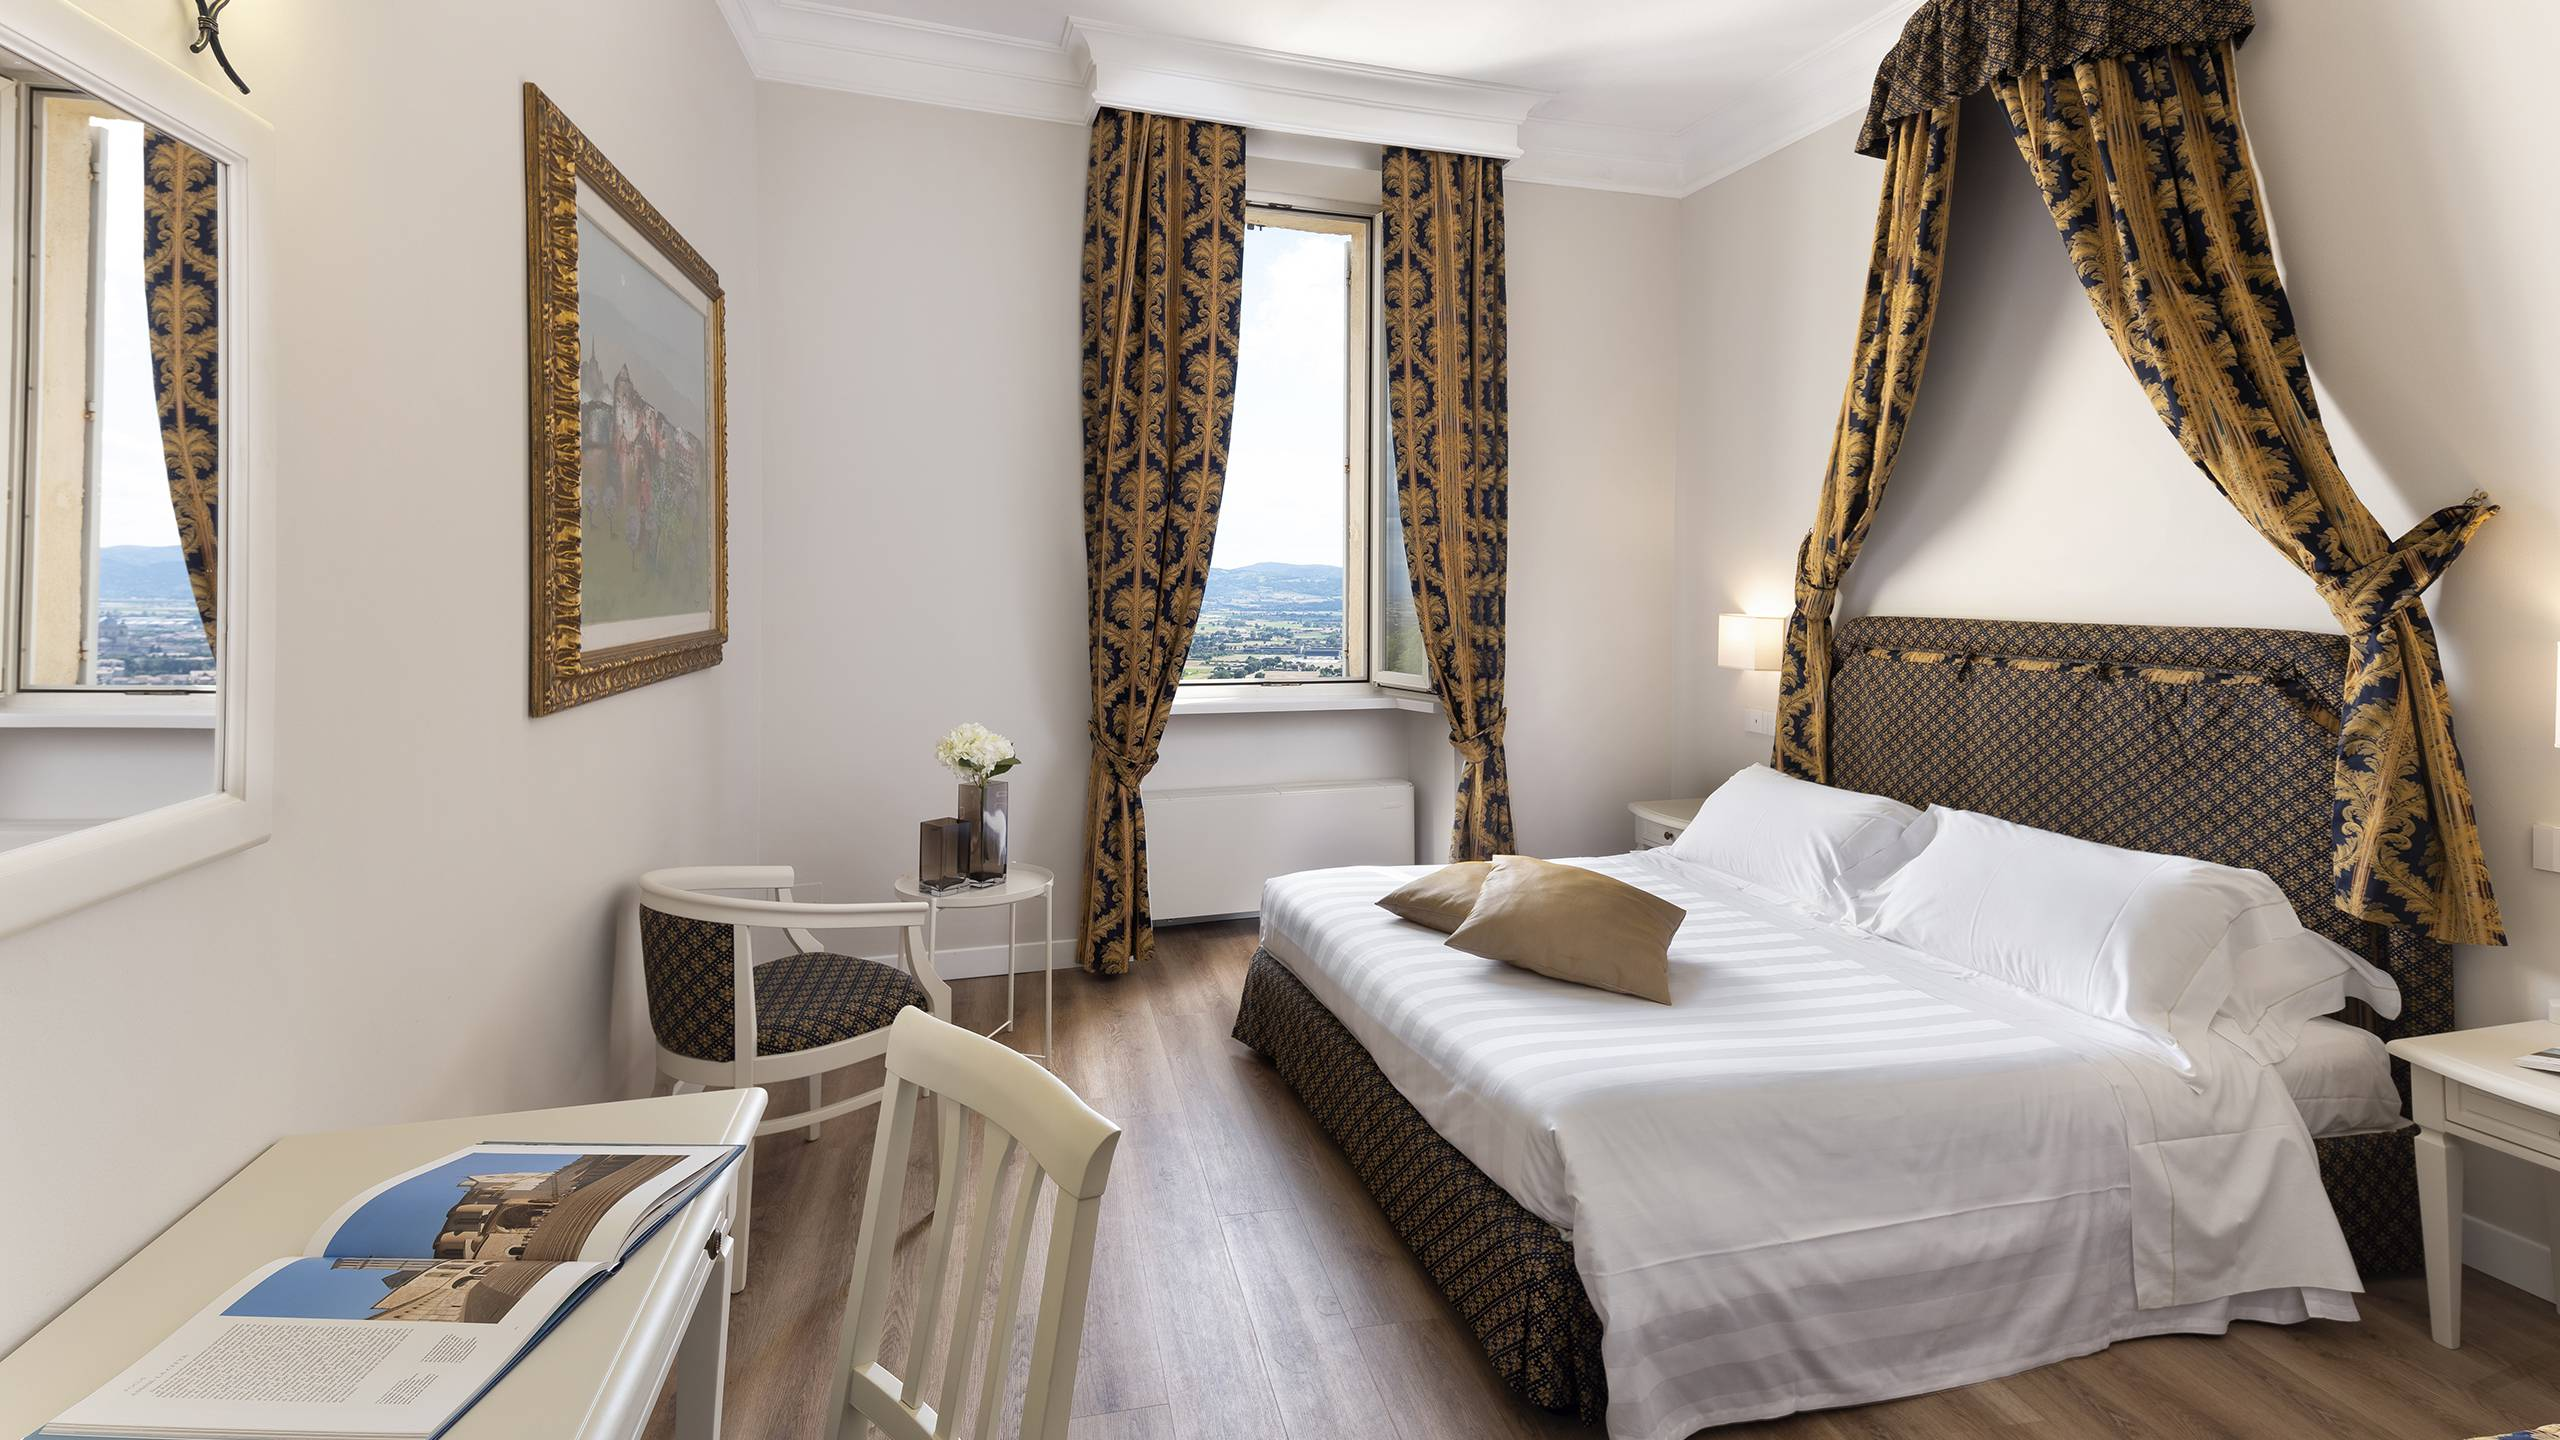 Fontebella-Palace-Hotel-Assisi-suite-507jsvvPPMF7242